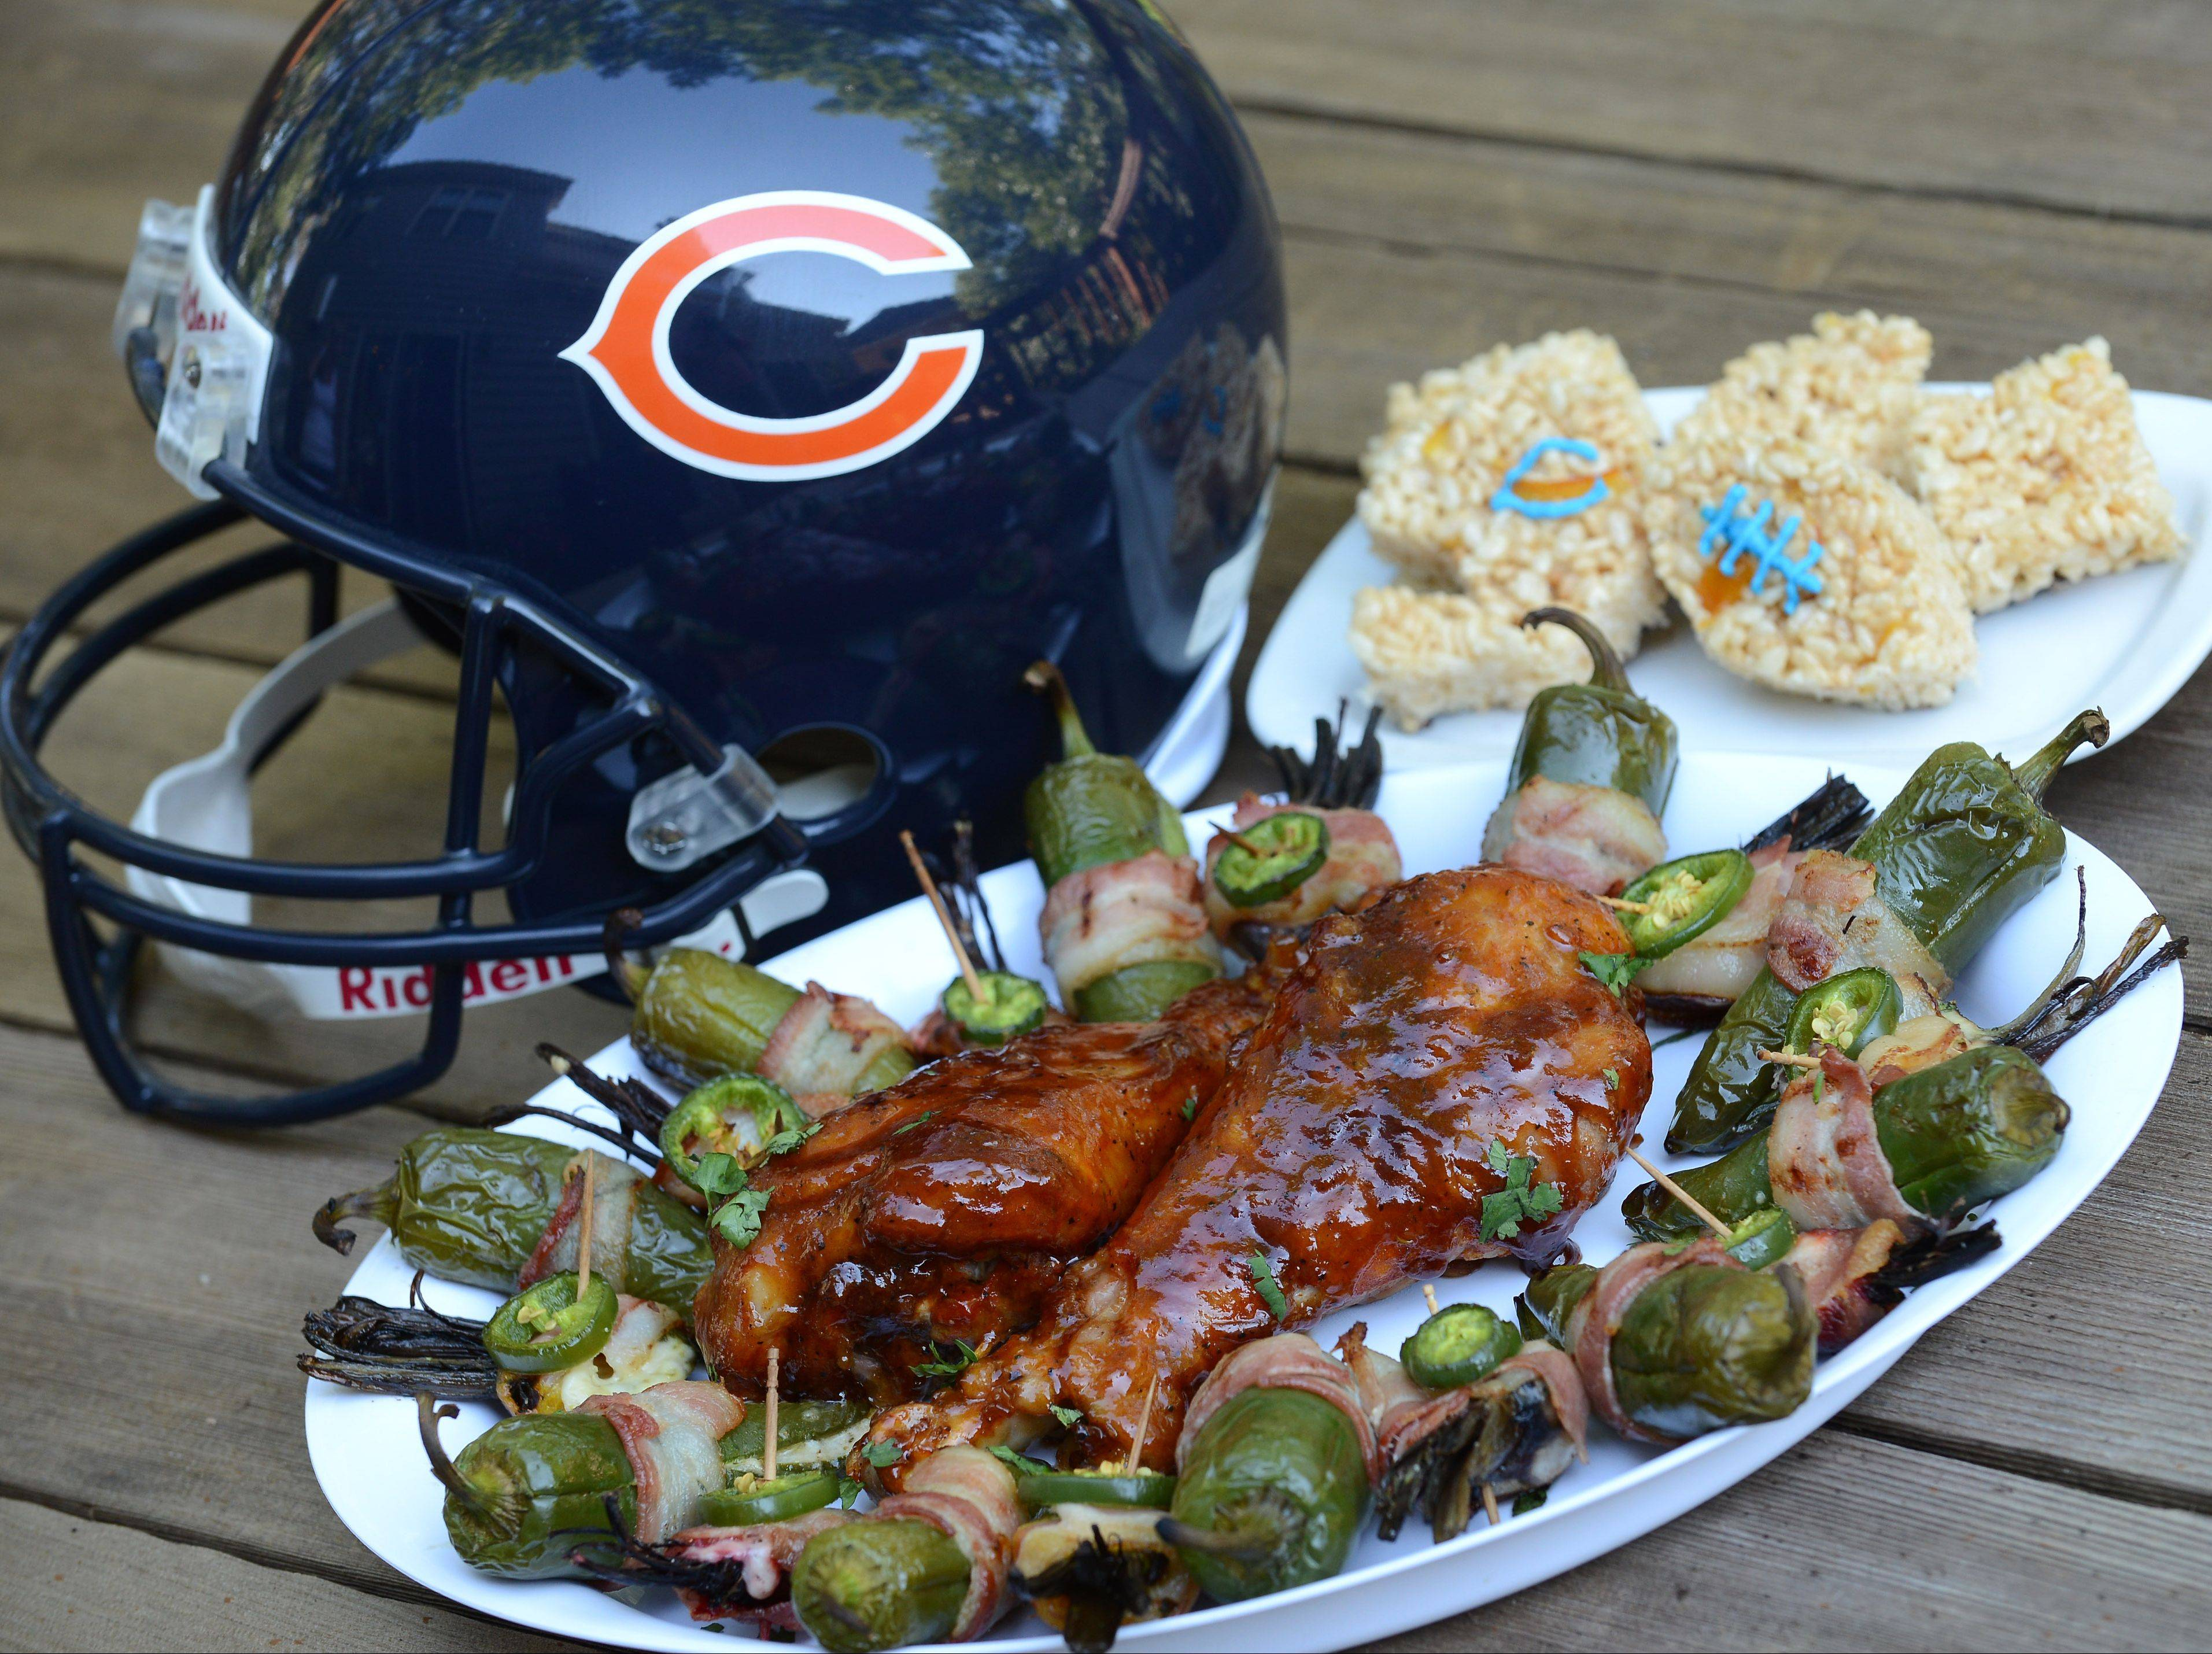 Jeff Zilch of Fox River Grove was tasked with making a tailgate meal using turkey legs, beets, havarti cheese and orange marmalade.